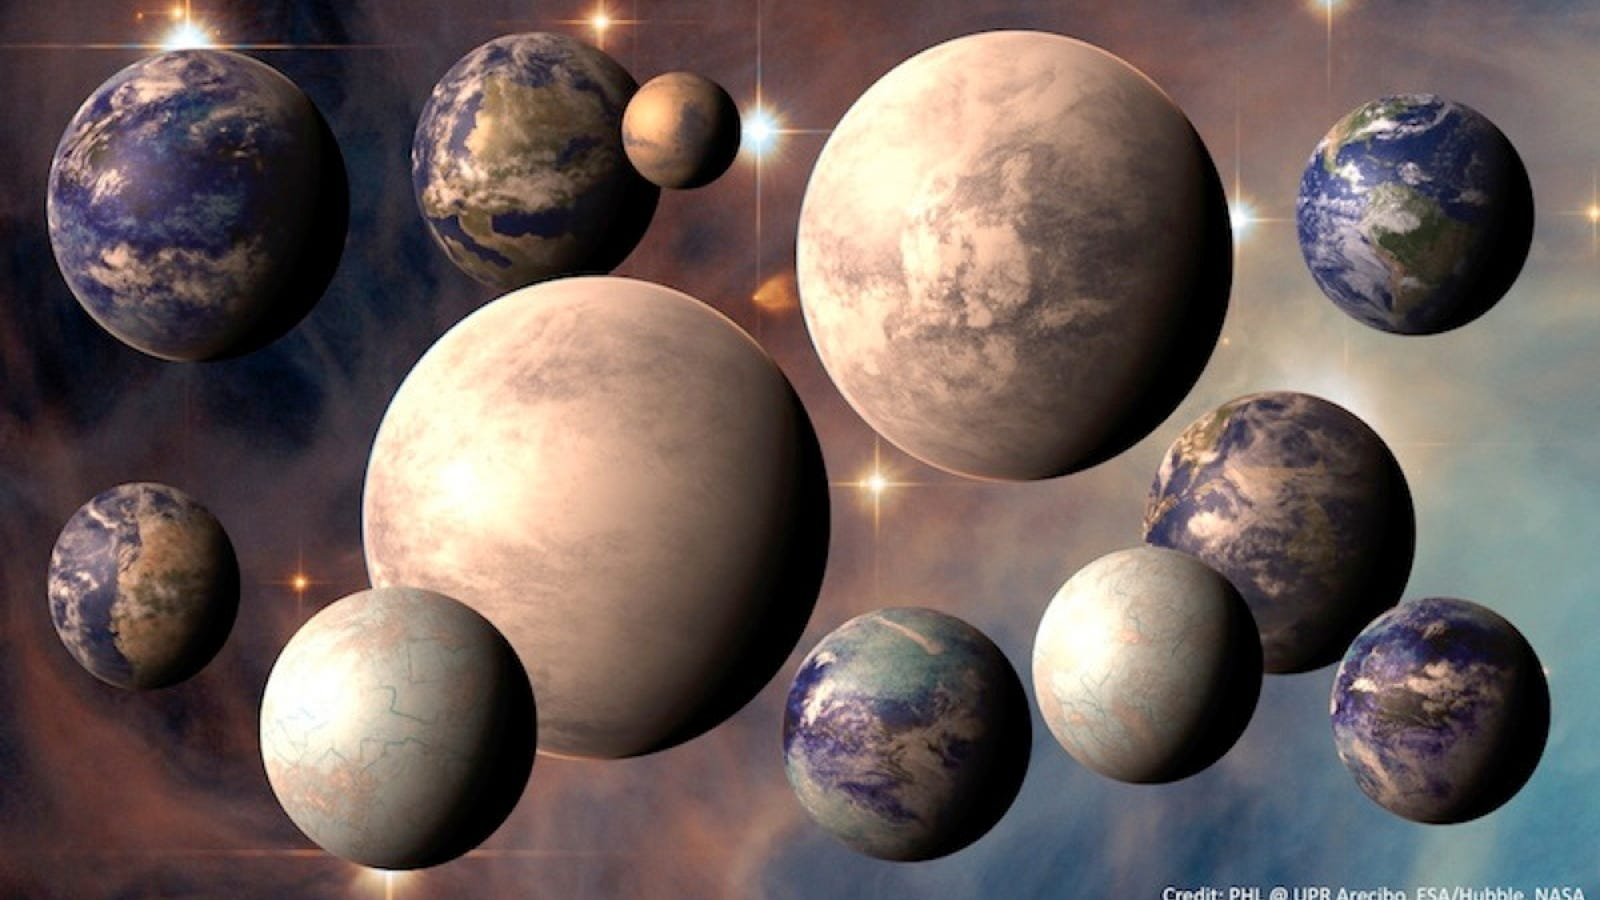 When it comes to exoplanets, science fiction lags way behind science